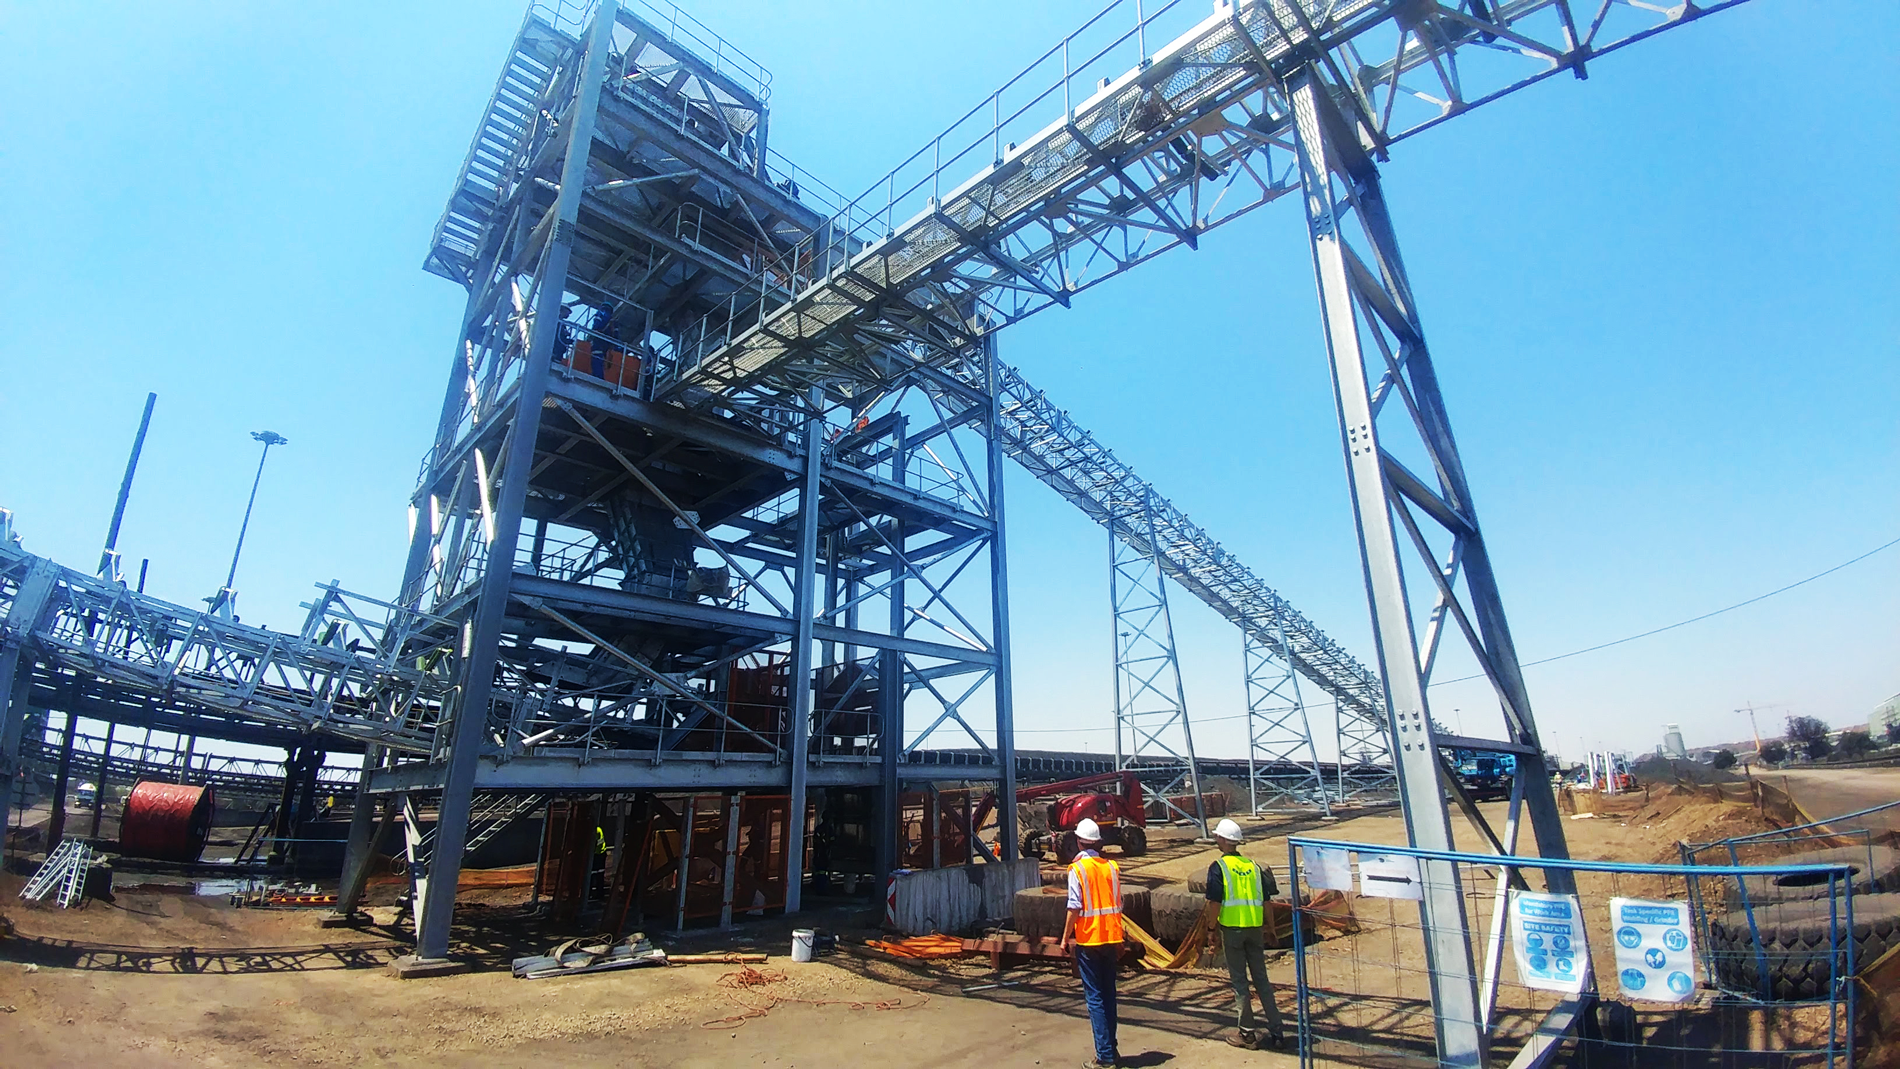 SPECIALISED CONSULTING IN THE MINING SECTOR